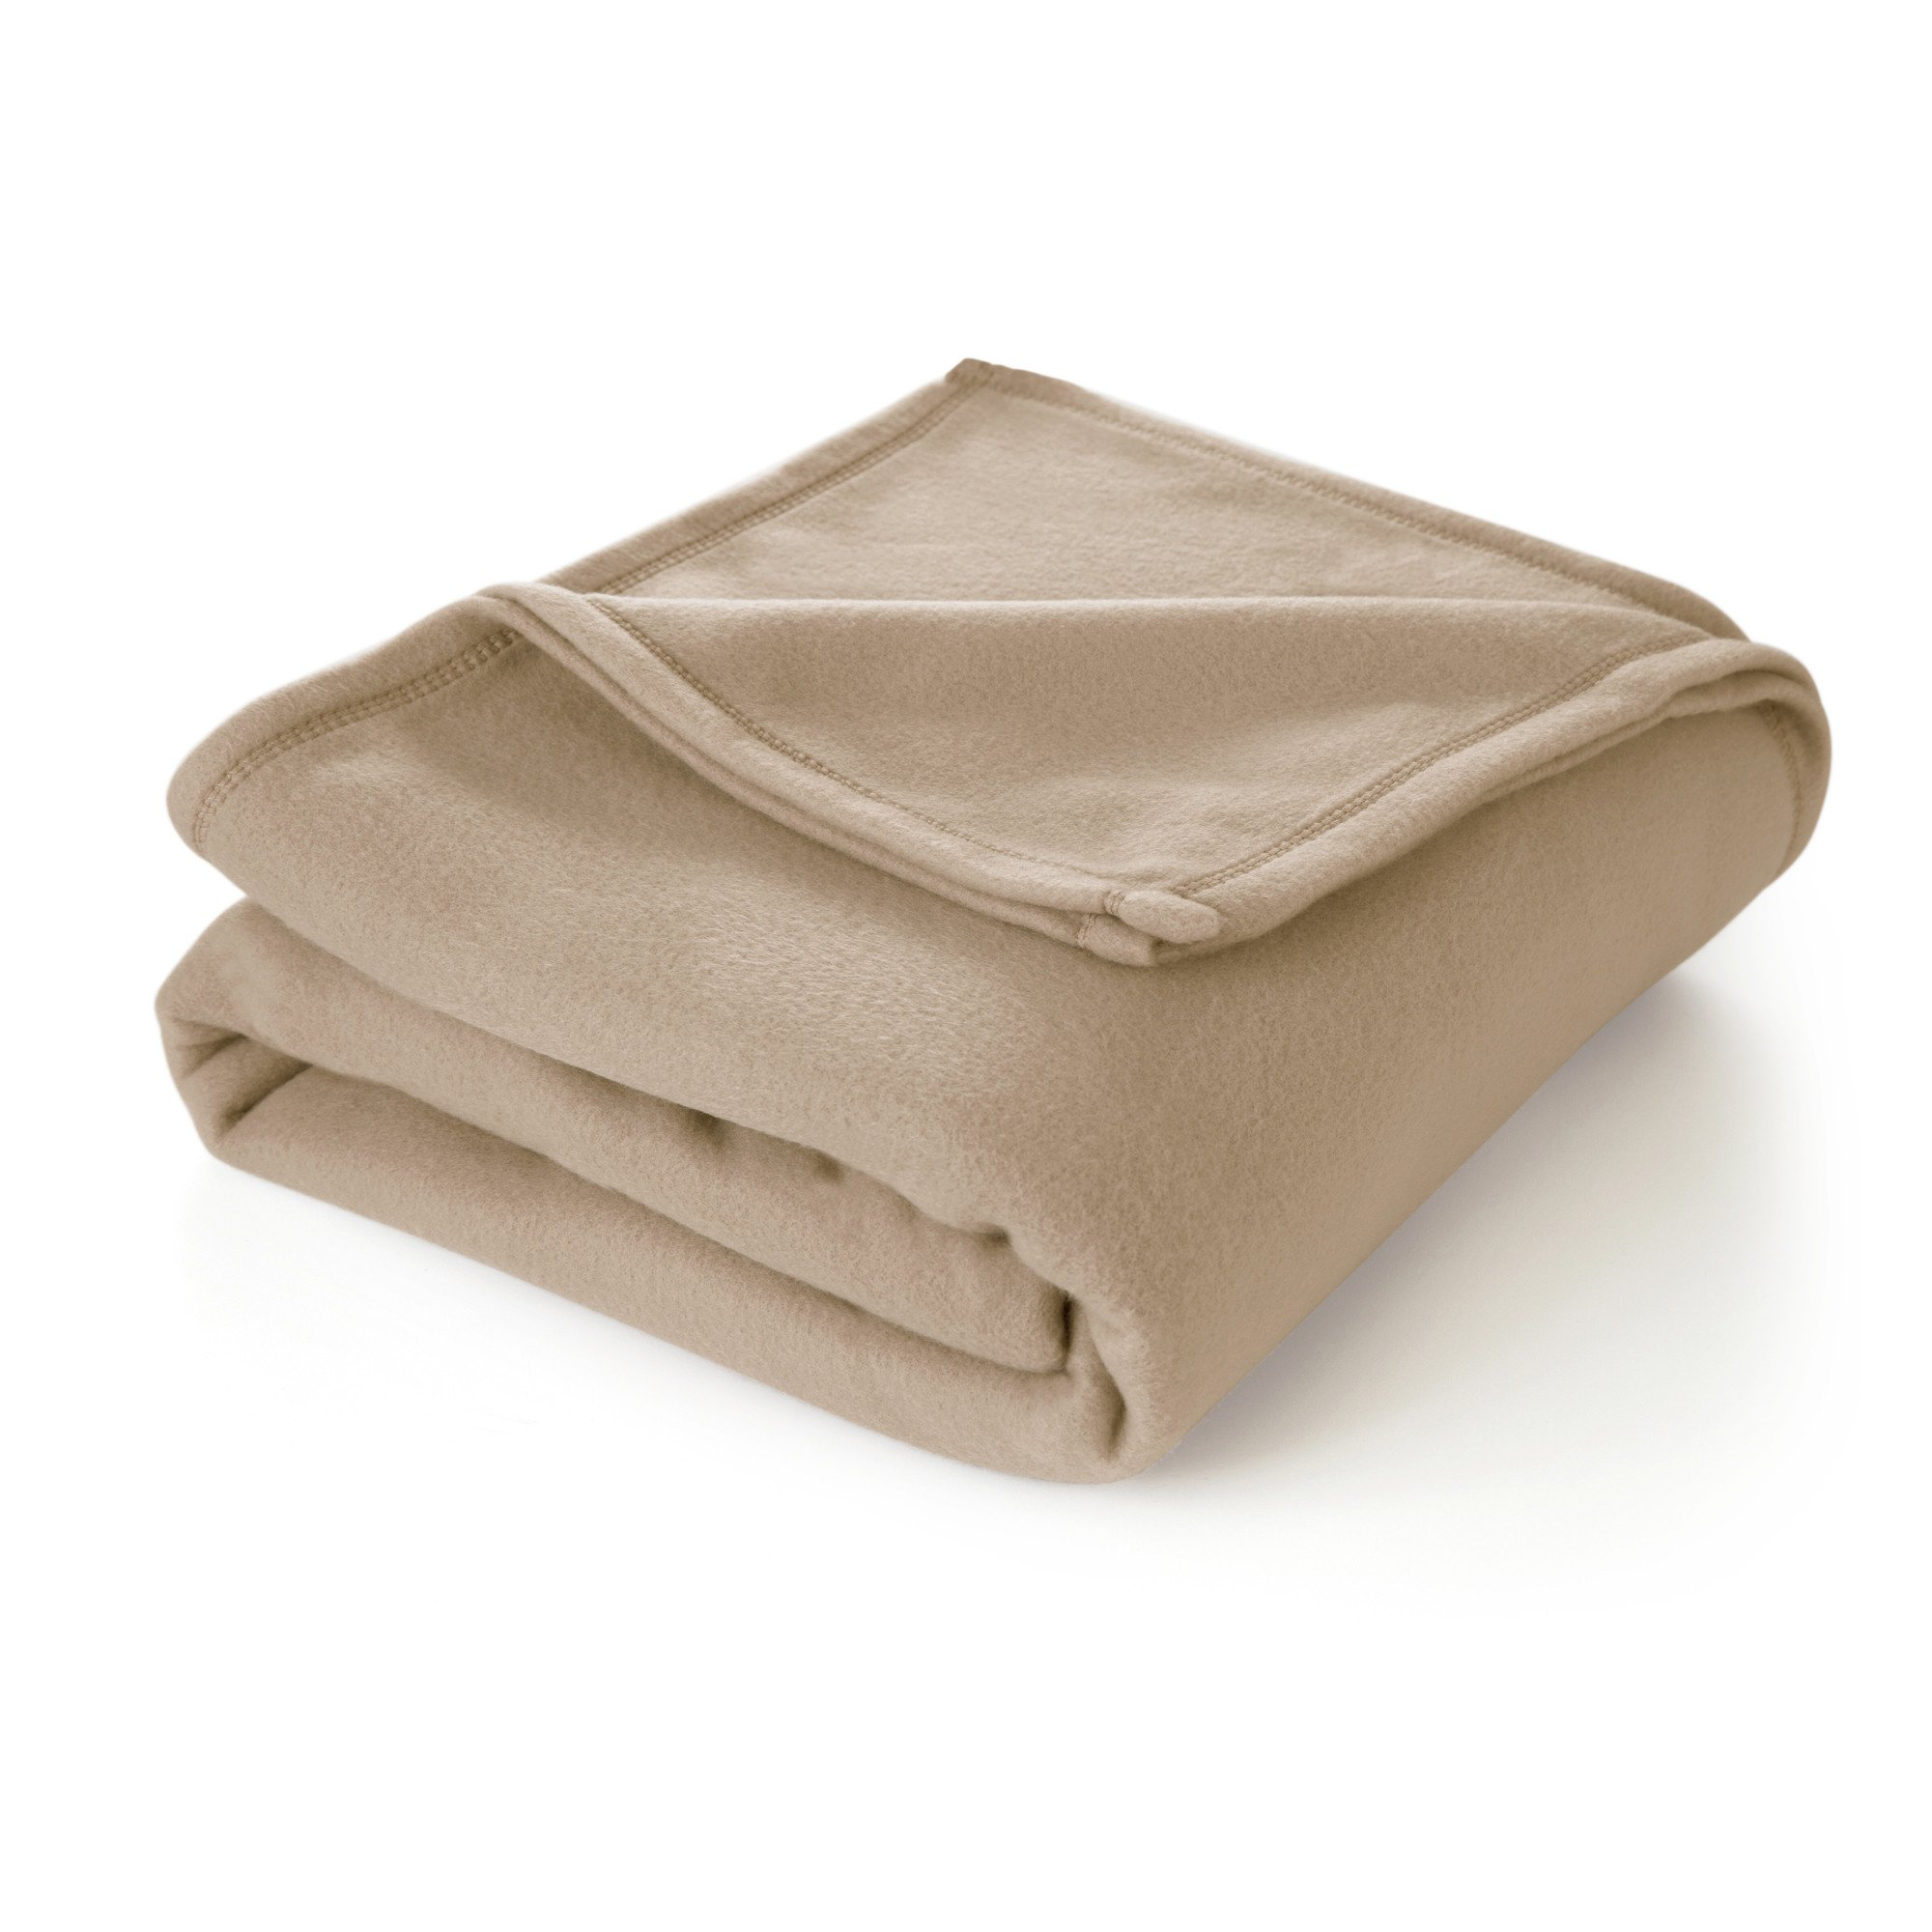 Martex Super Soft Fleece Blanket - Full/Queen, Warm, Lightweight, Pet-Friendly, Throw for Home Bed, Sofa & Dorm - Linen